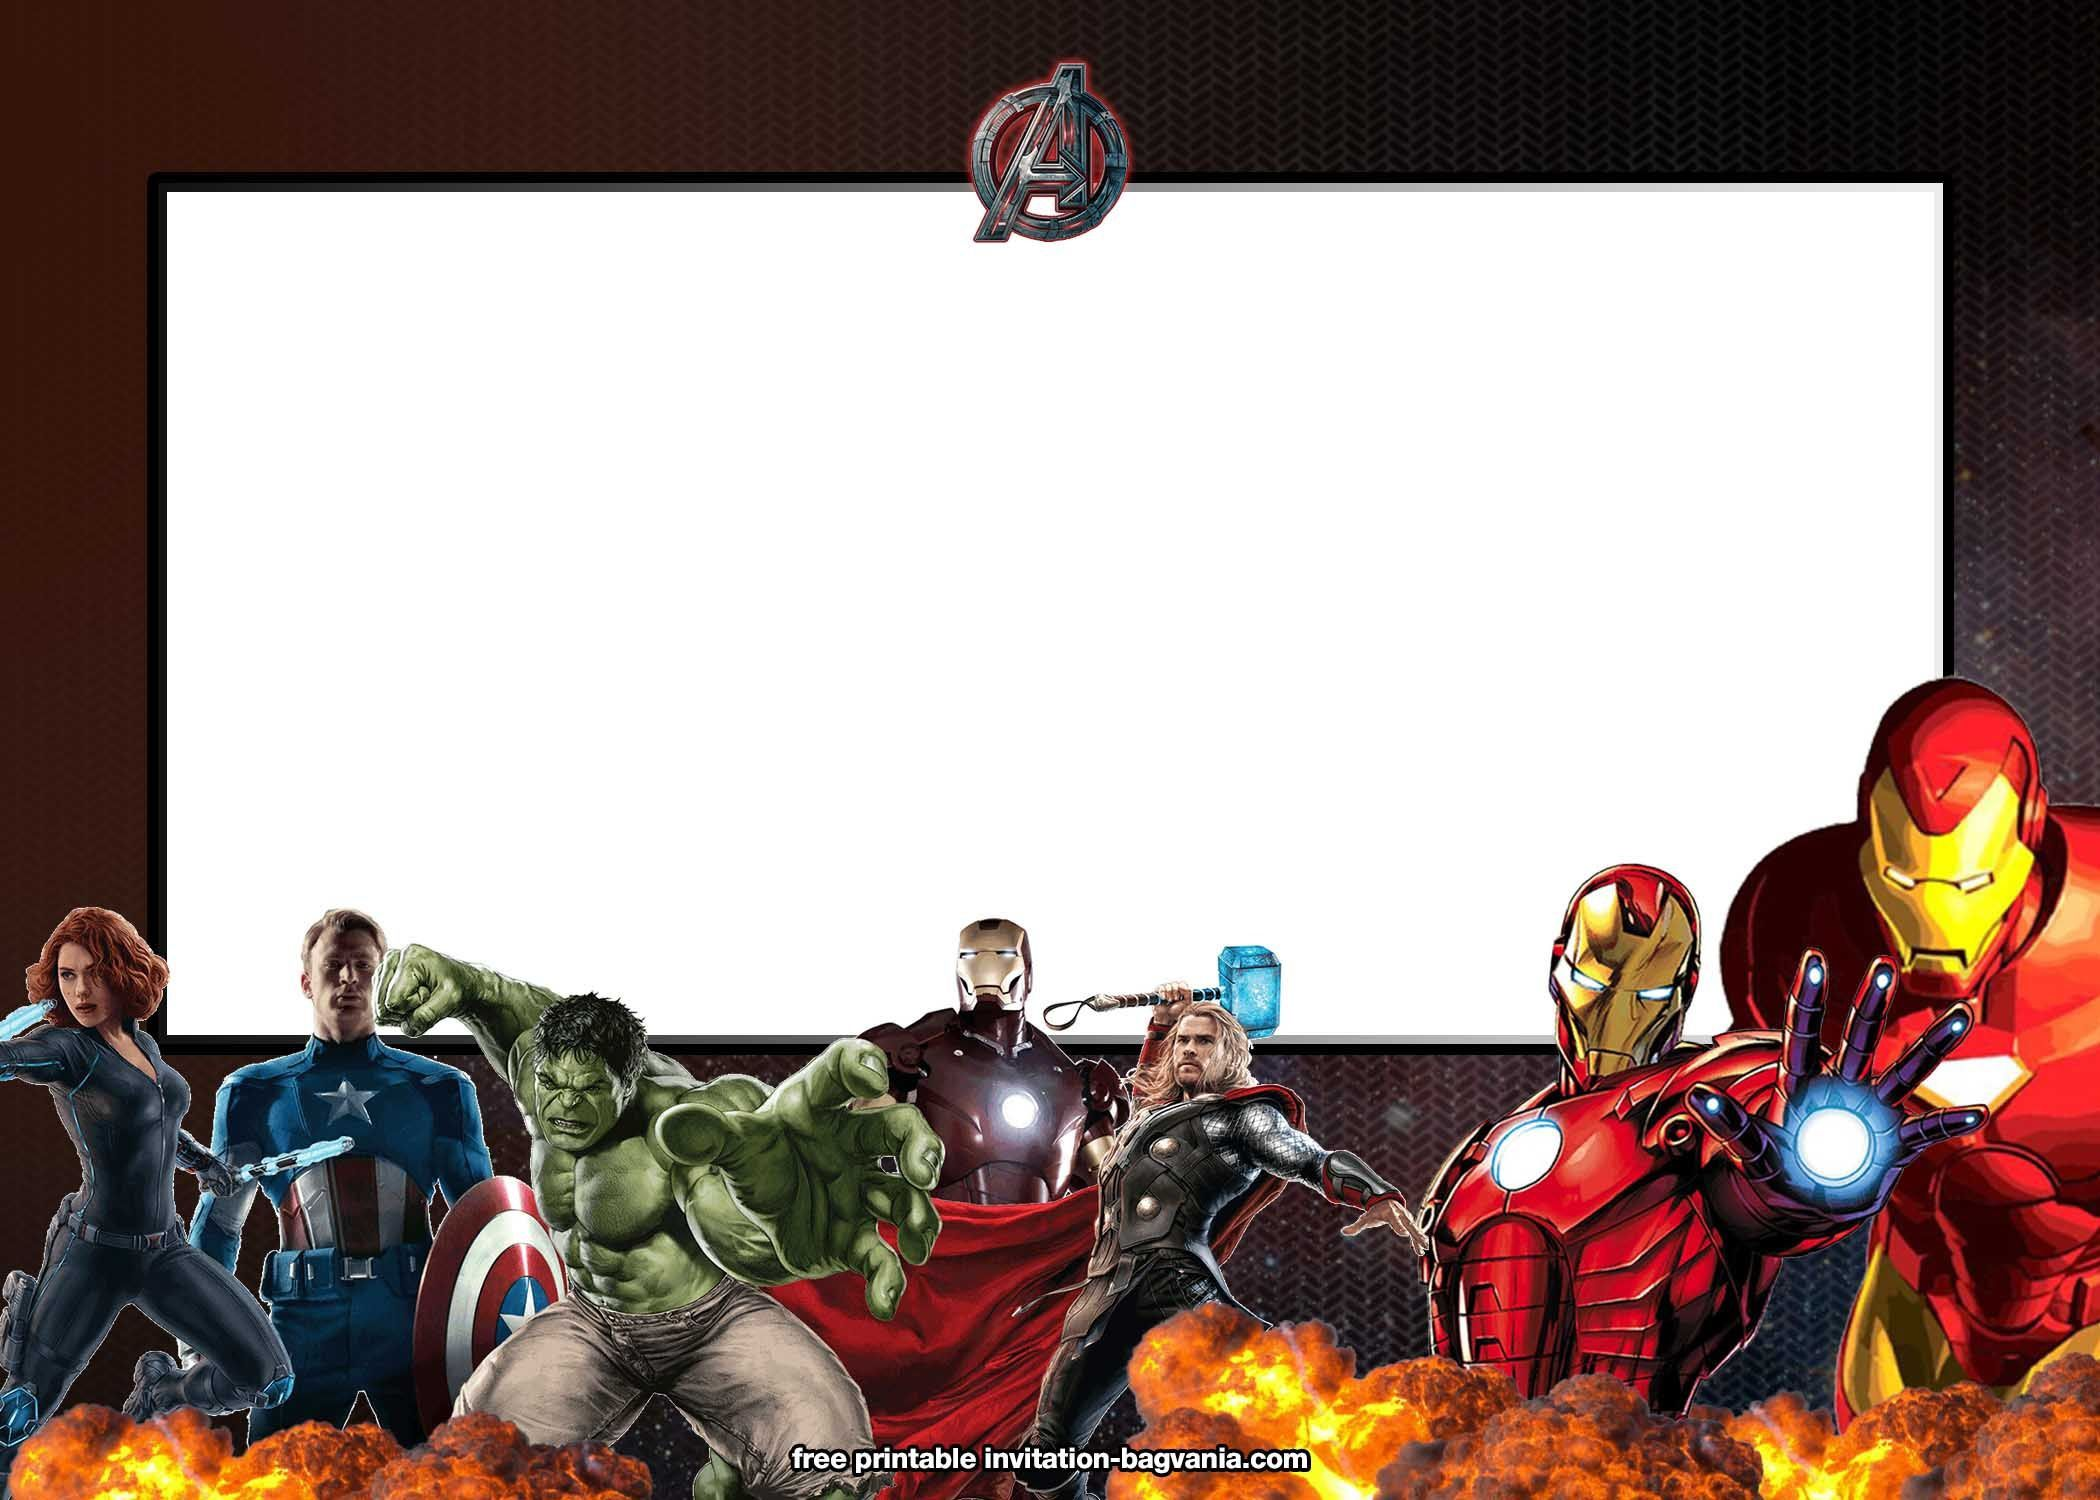 004 Top Avenger Birthday Party Invitation Template Free Example  InviteFull